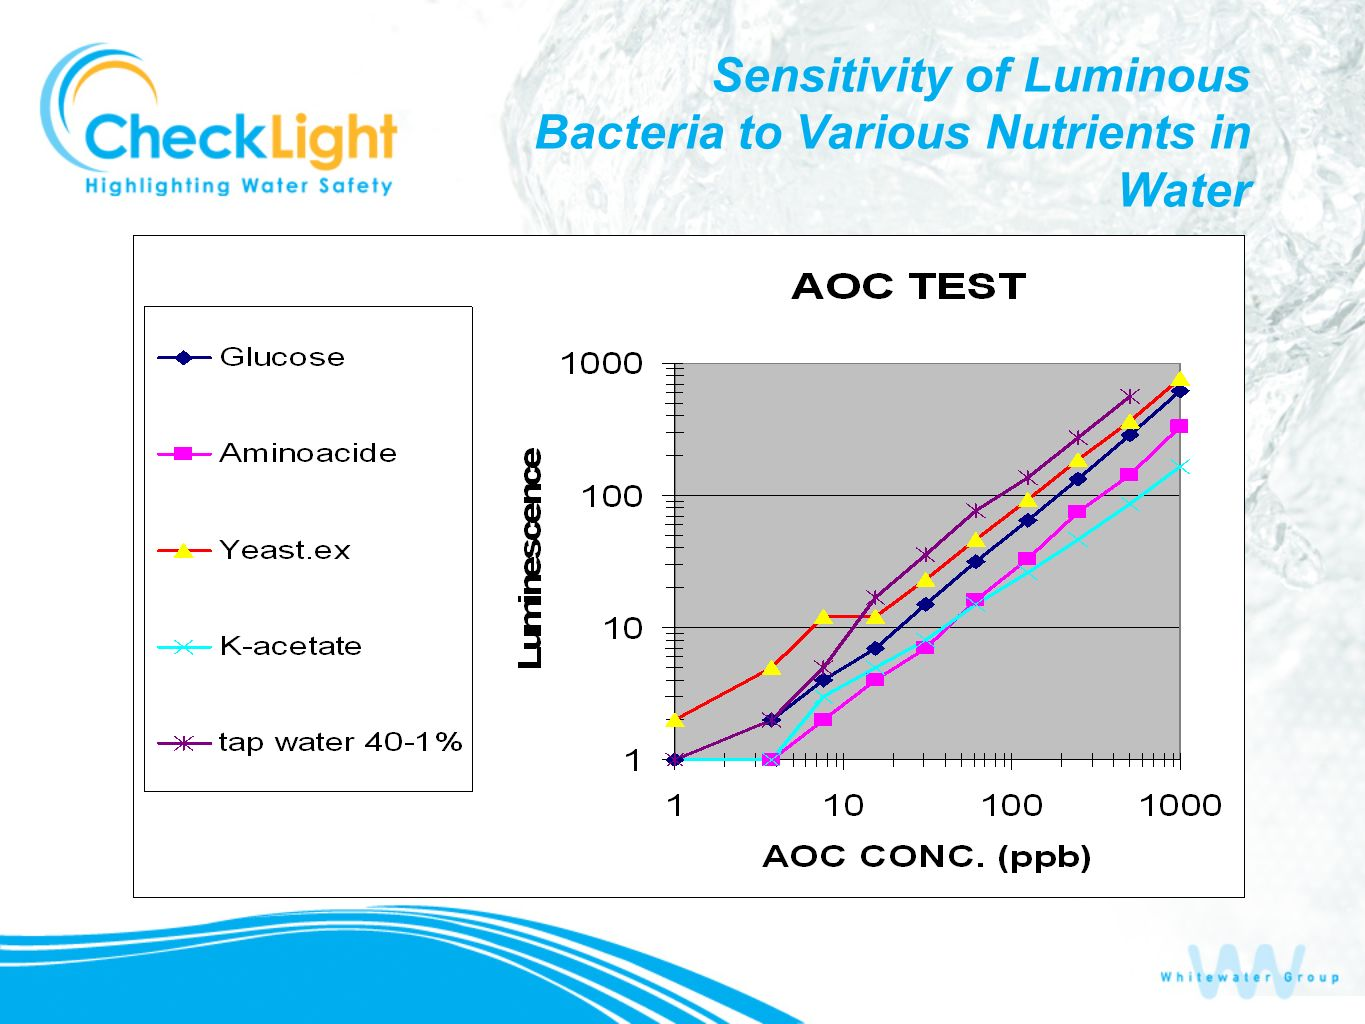 Sensitivity of Luminous Bacteria to Various Nutrients in Water